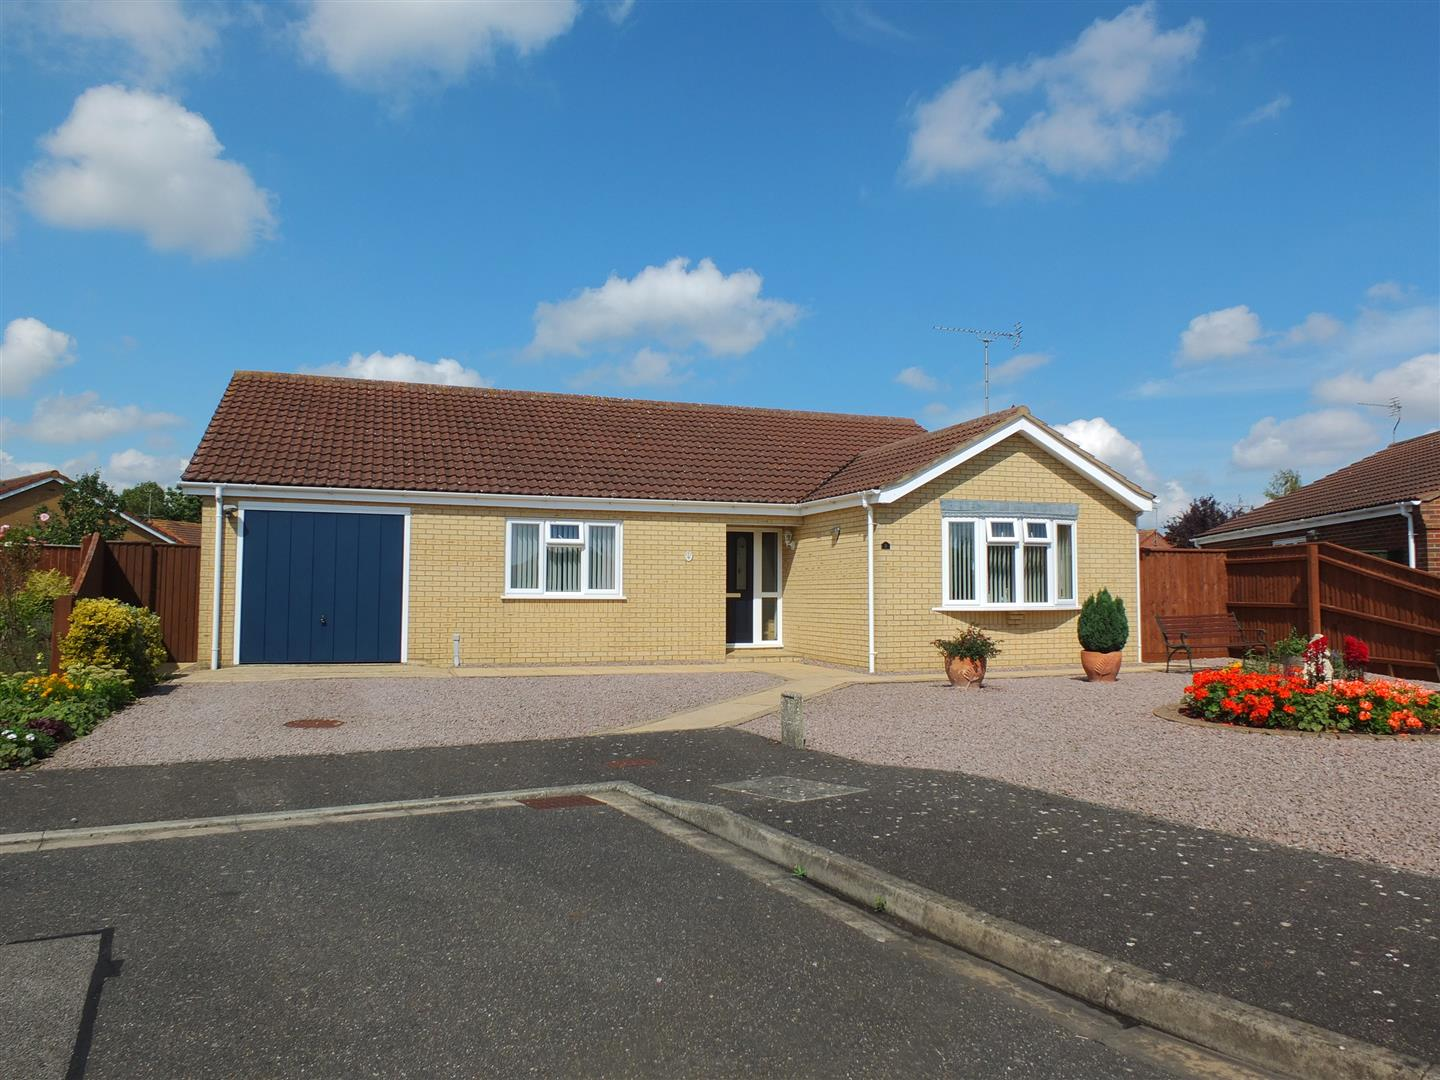 3 bed detached bungalow for sale in Long Sutton Spalding, PE12 9FT 0